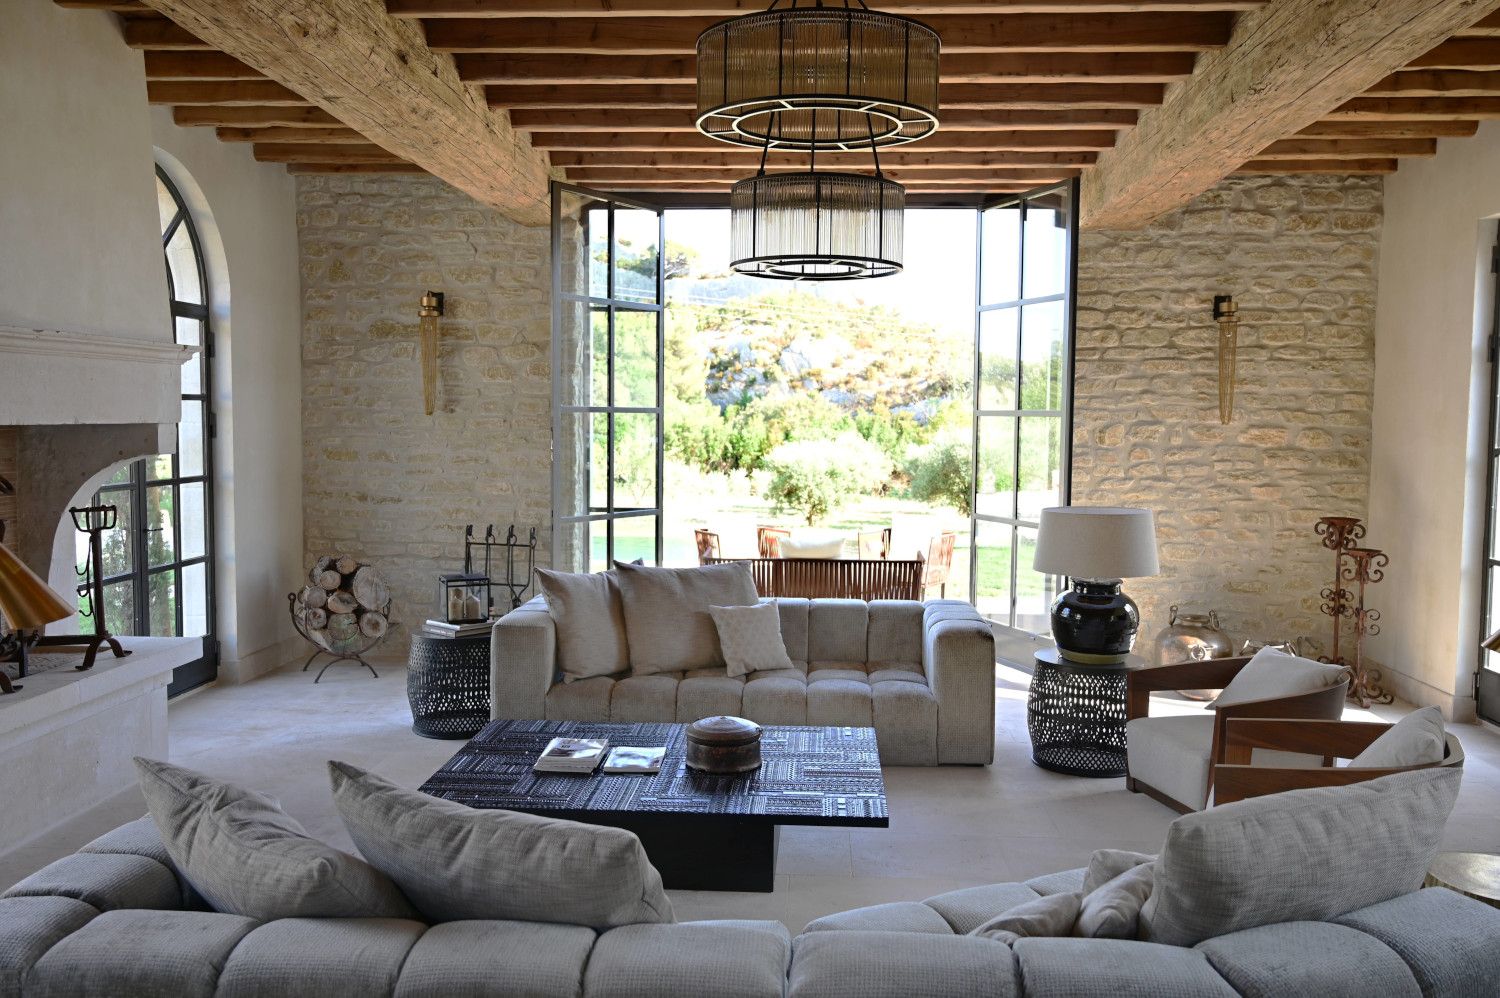 La rénovation d'un mas provençal dans les Alpilles en style contemporain - PLANETE DECO a homes world